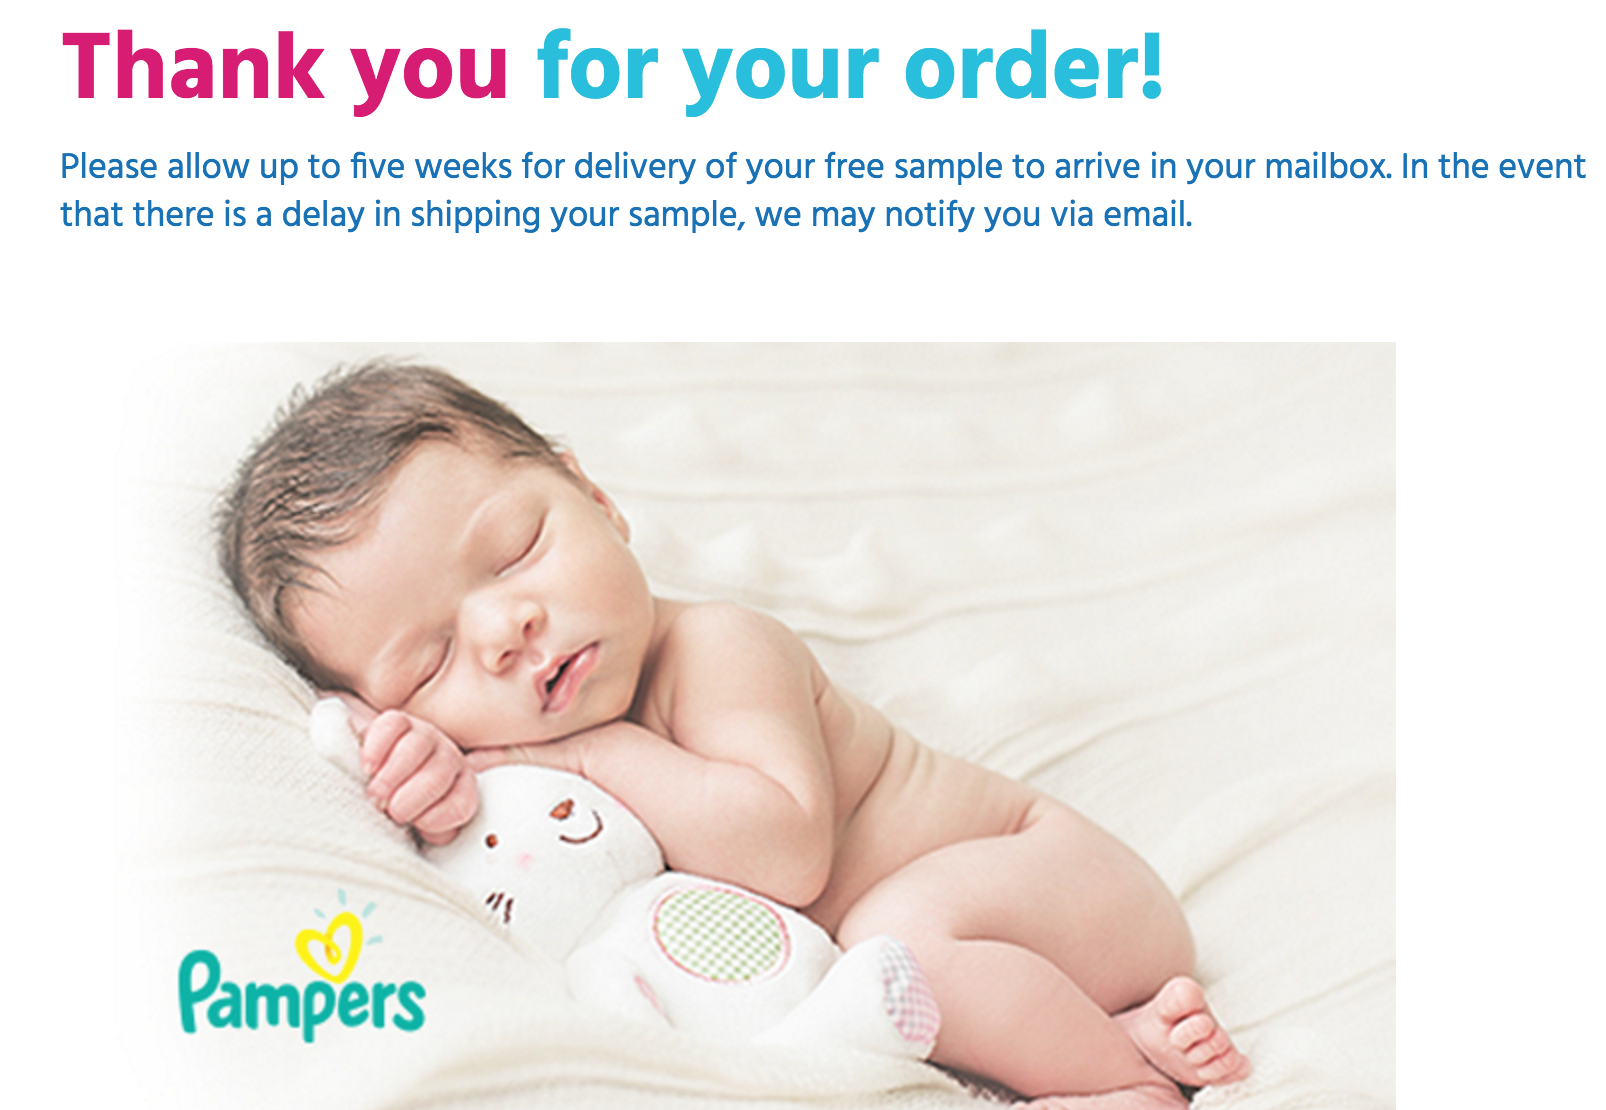 FREE Baby Welcome Box + FREE Shipping!